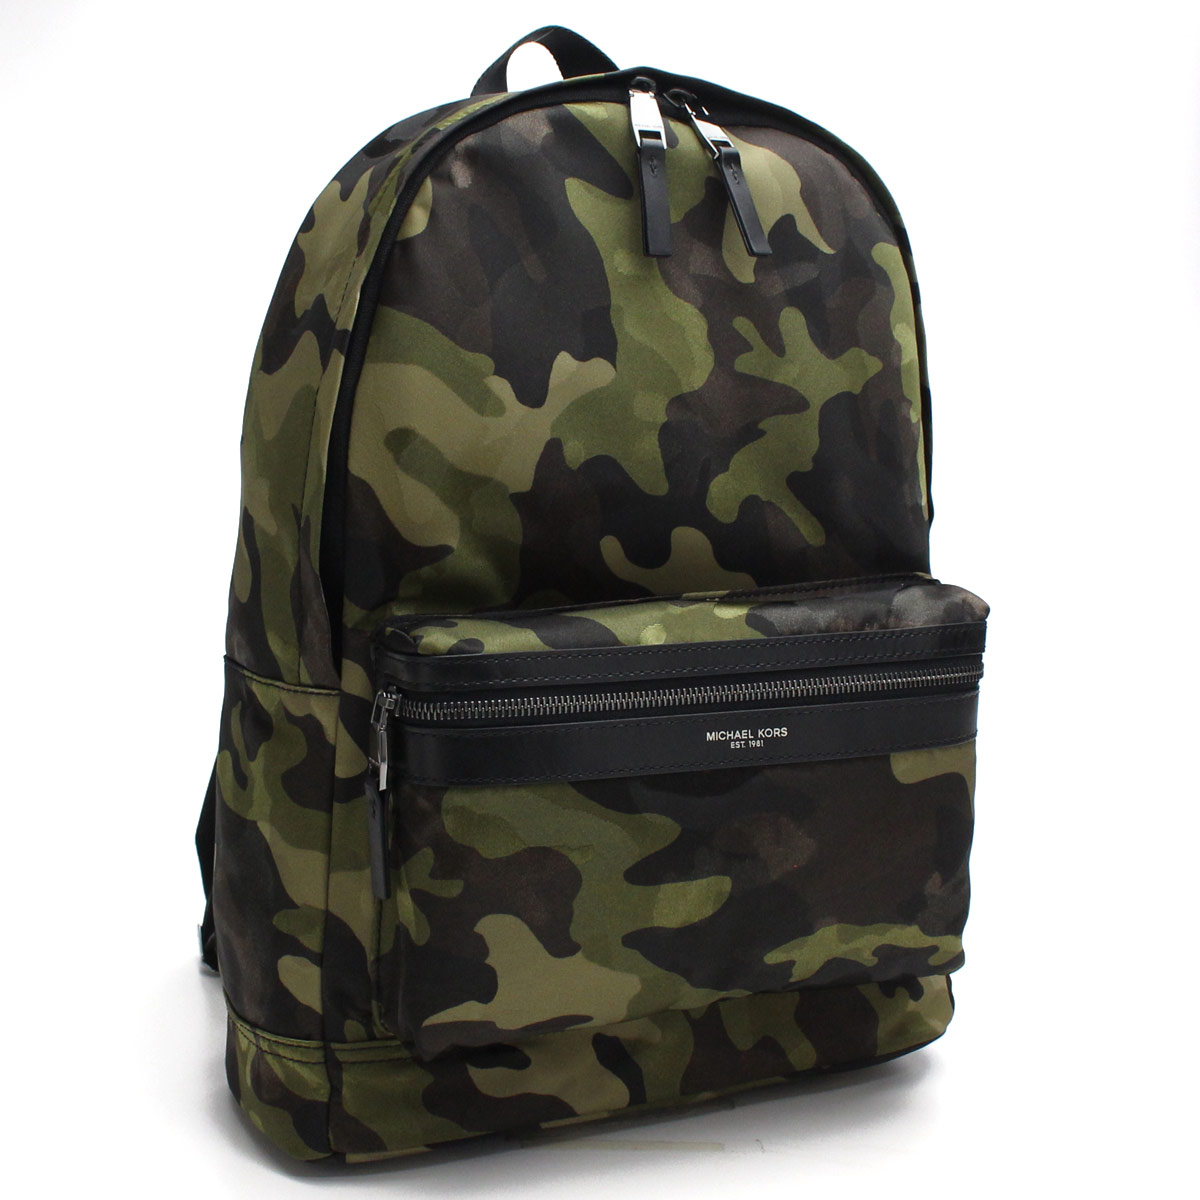 6d5ce9fa66e4 Bighit The total brand wholesale: Michael Kors MICHAEL KORS rucksack KENT  Kent camouflage nylon bag pack 33F7LKNB2R MILITARY multicolored | Rakuten  Global ...